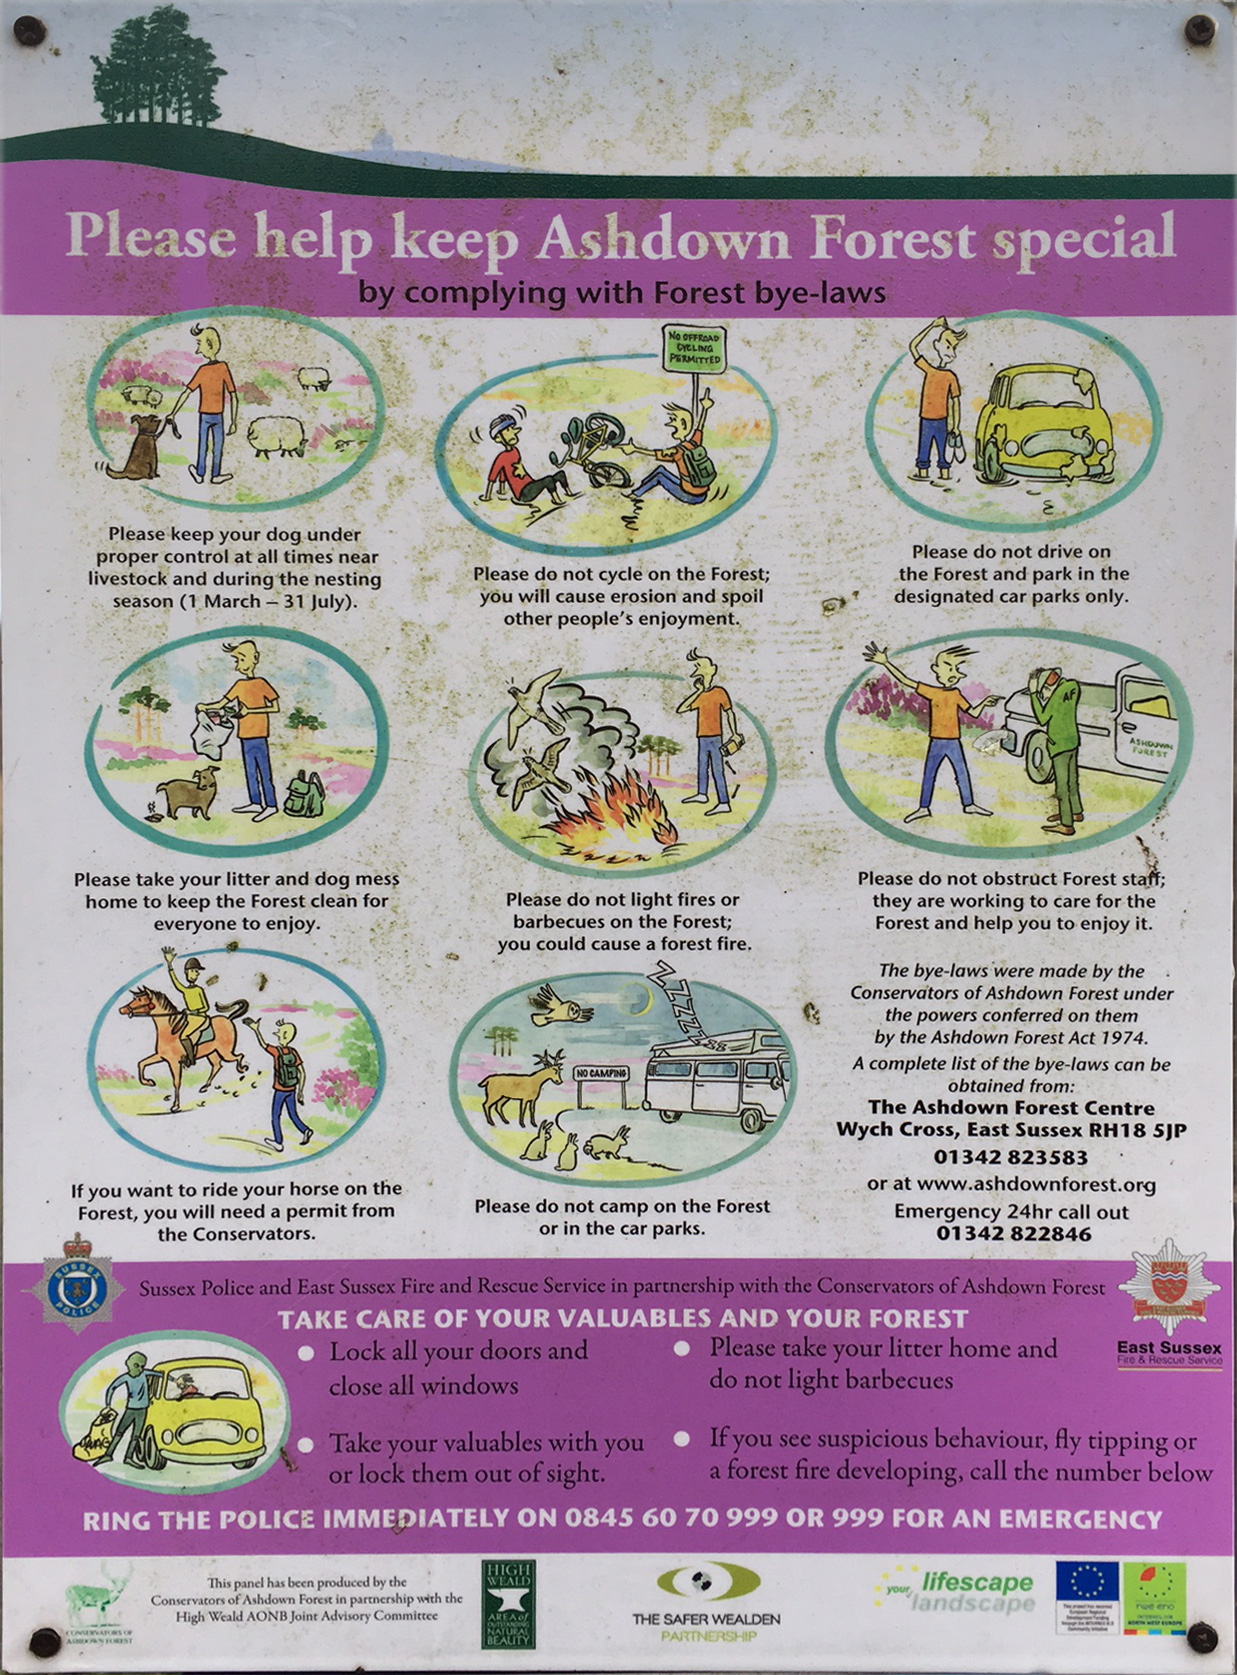 Keep the Ashdown Forest Special